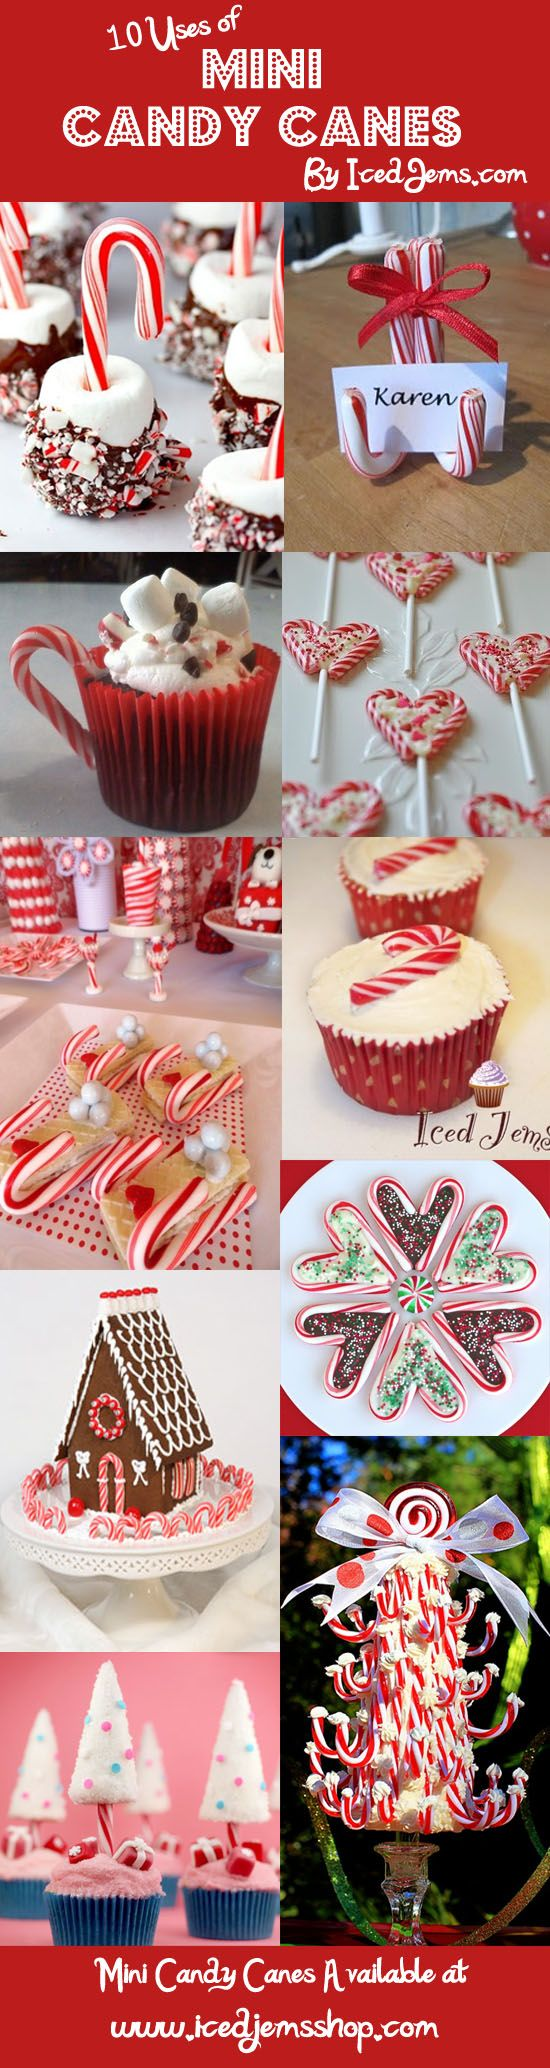 10 Ways to use Mini Candy Canes